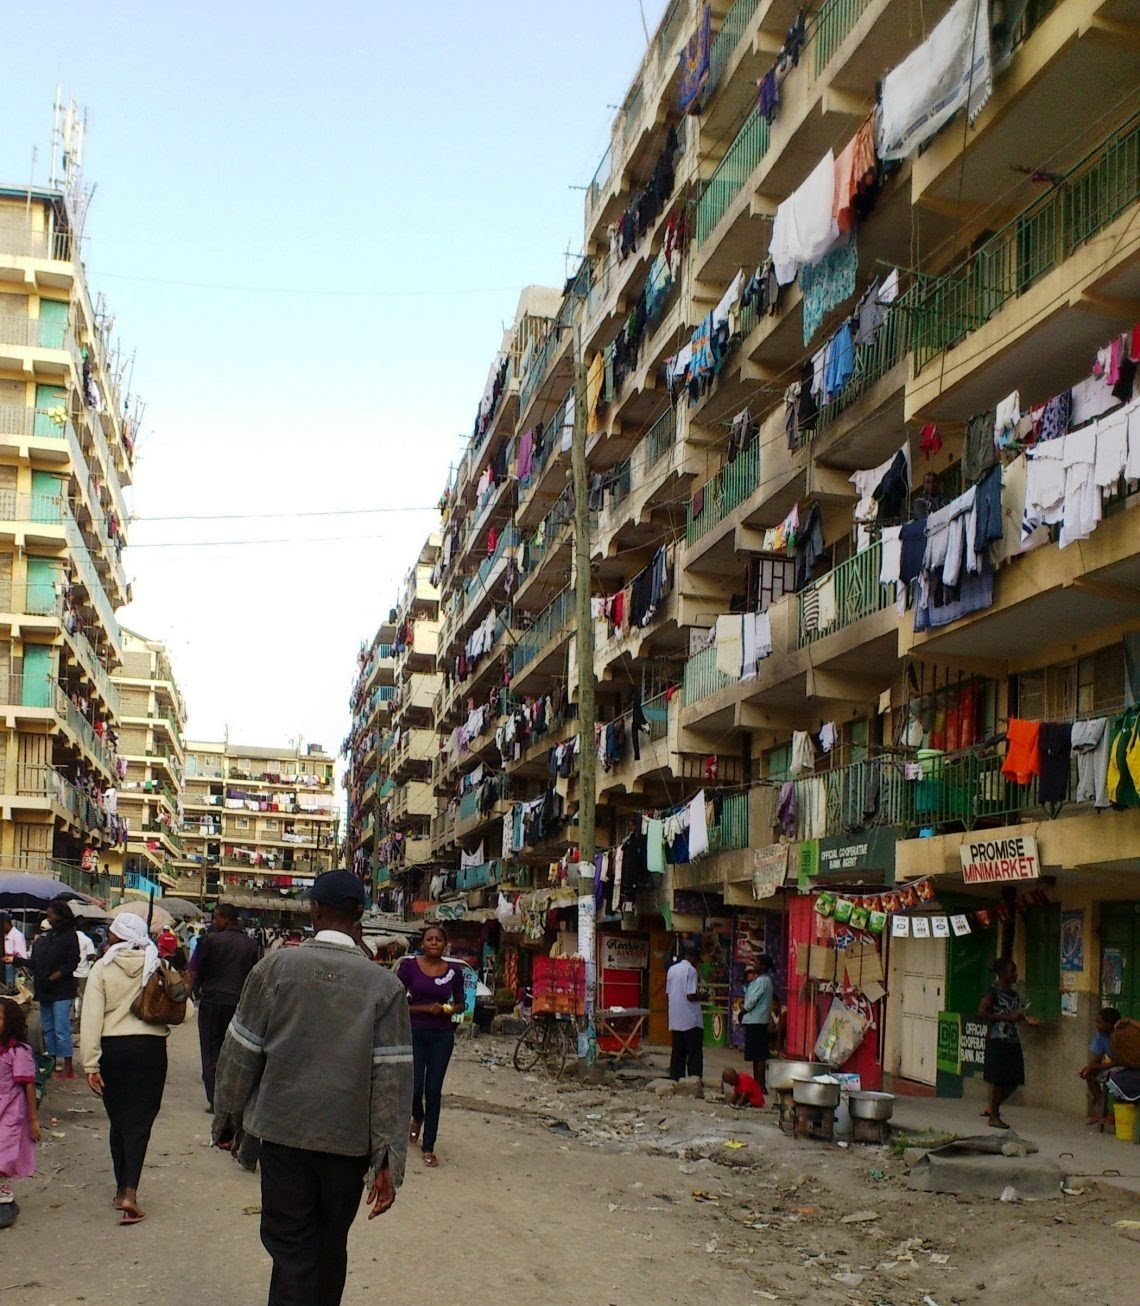 A street view in Nairobi's Pipeline Estate